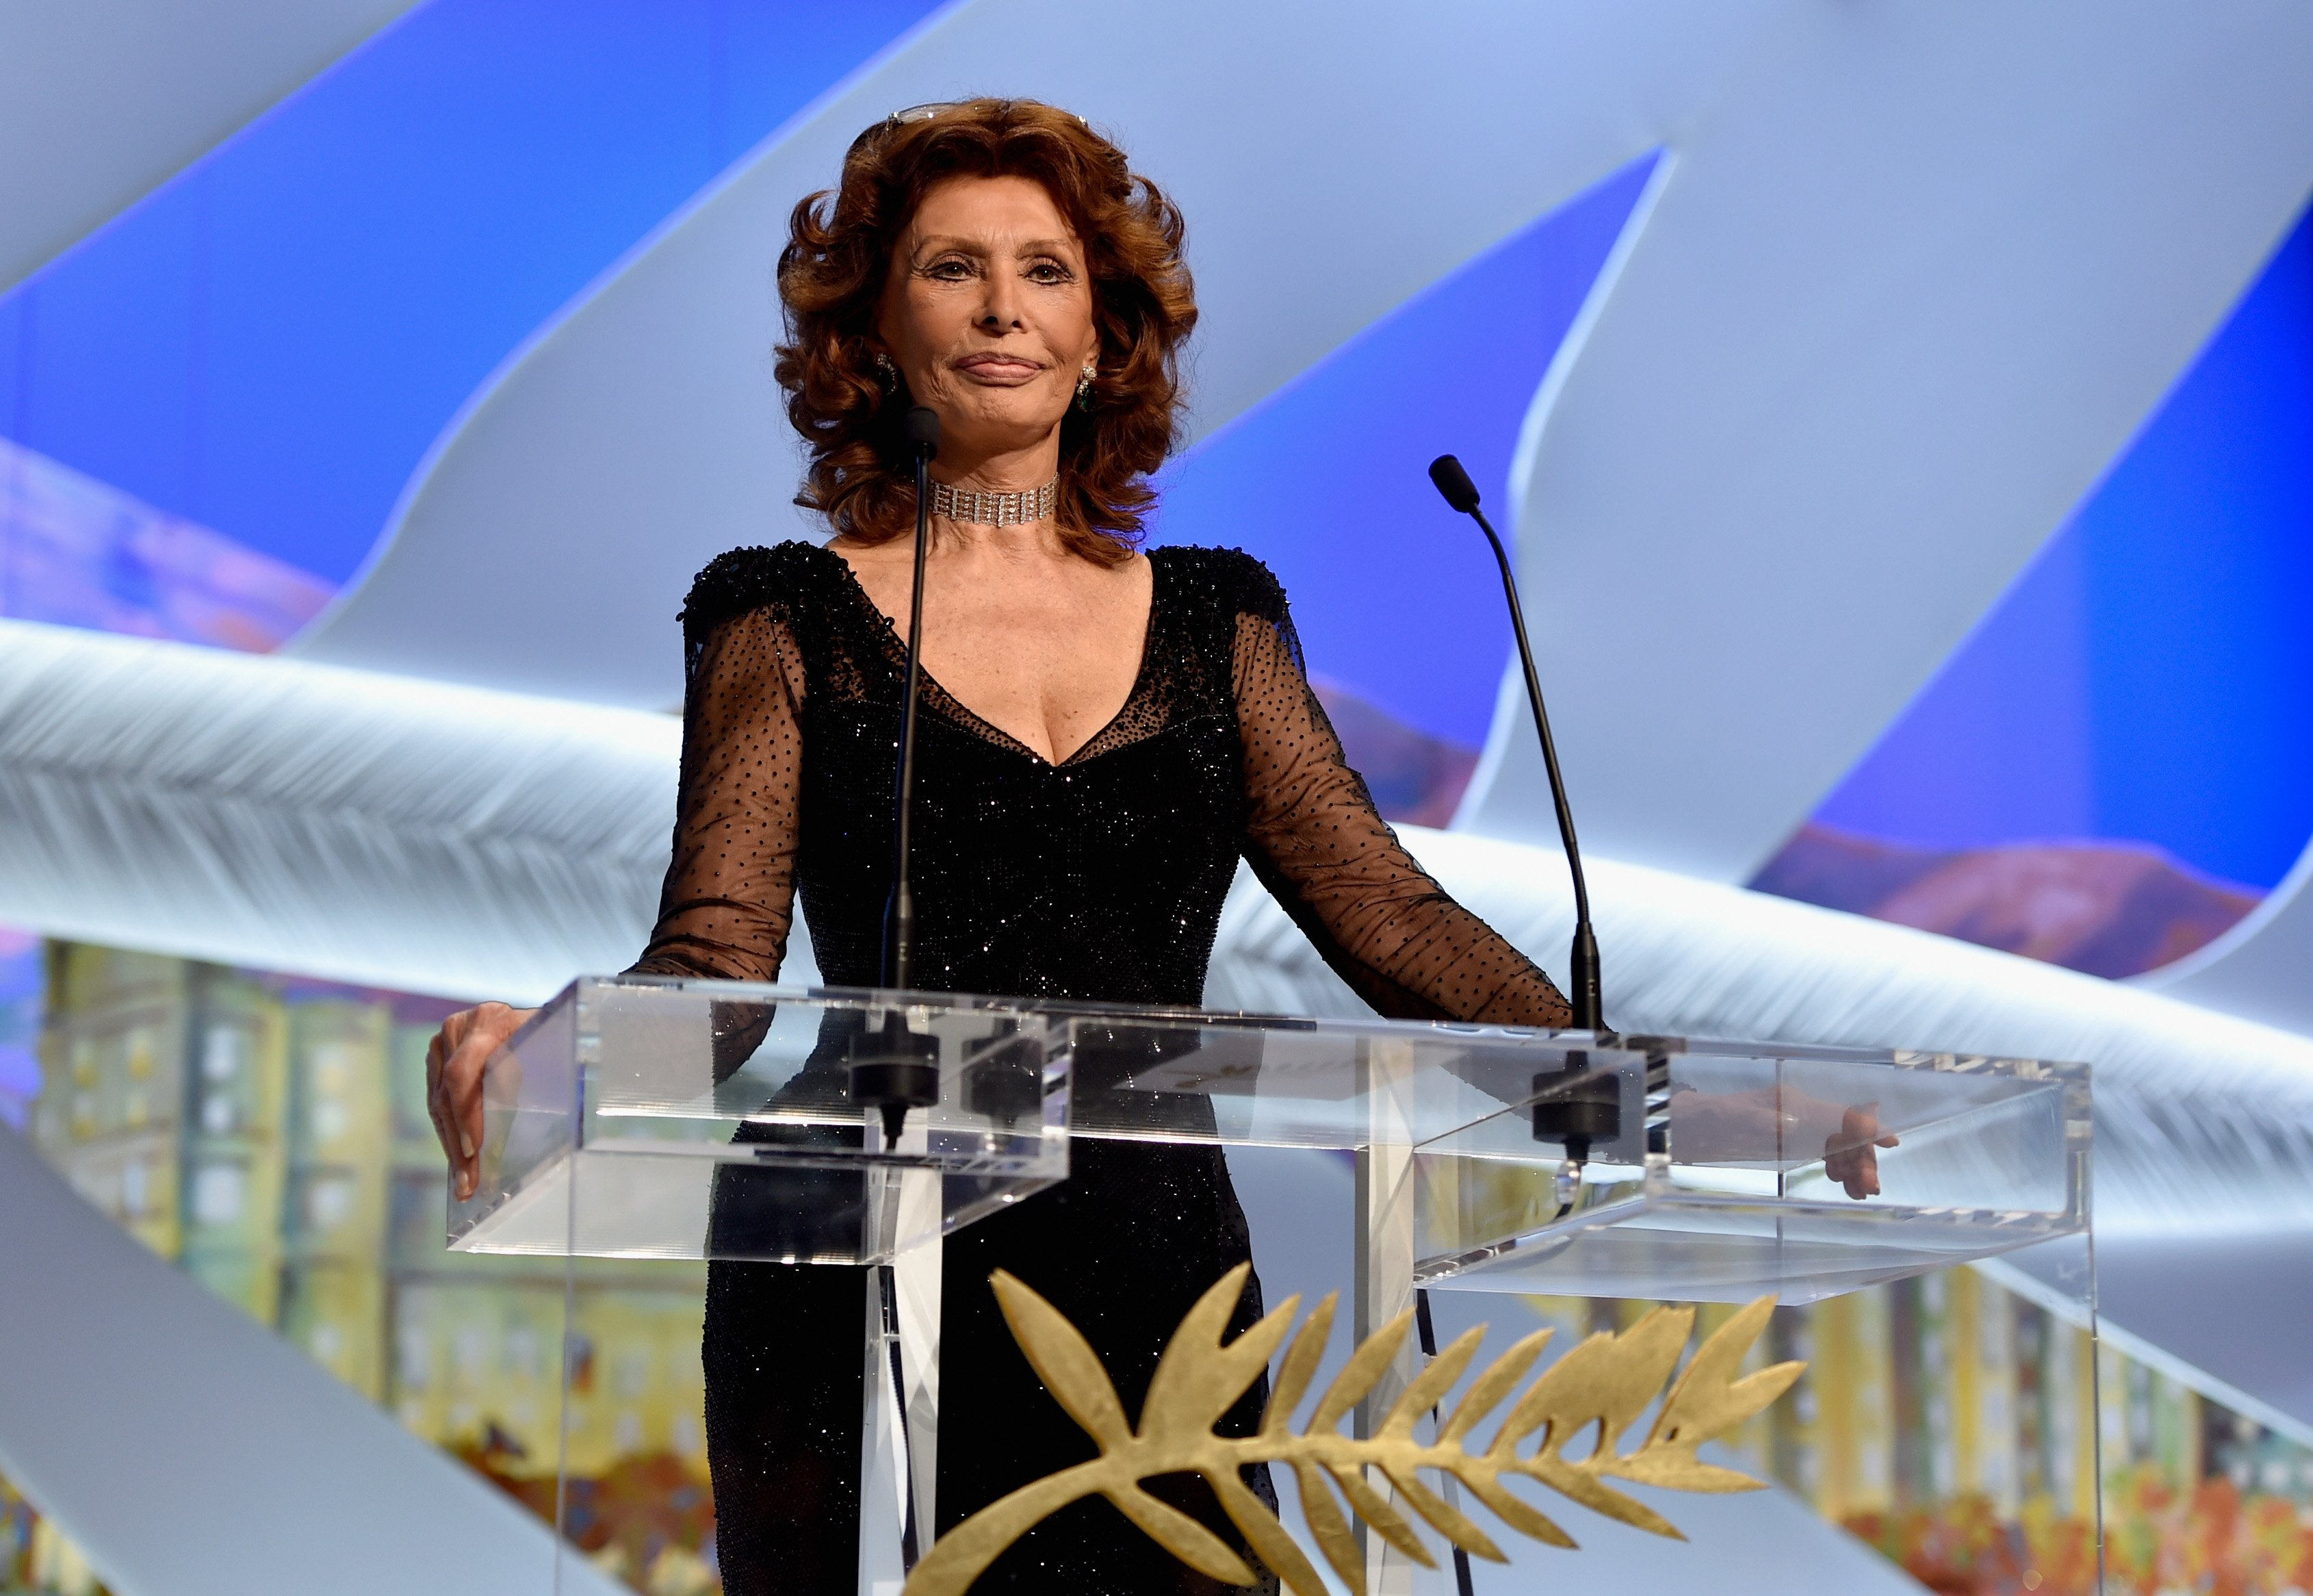 CANNES, FRANCE - MAY 24: Actress Sophia Loren appears on stage to present The Grand Prix award during the Closing Ceremony at the 67th Annual Cannes Film Festival on May 24, 2014 in Cannes, France. (Photo by Pascal Le Segretain/Getty Images)